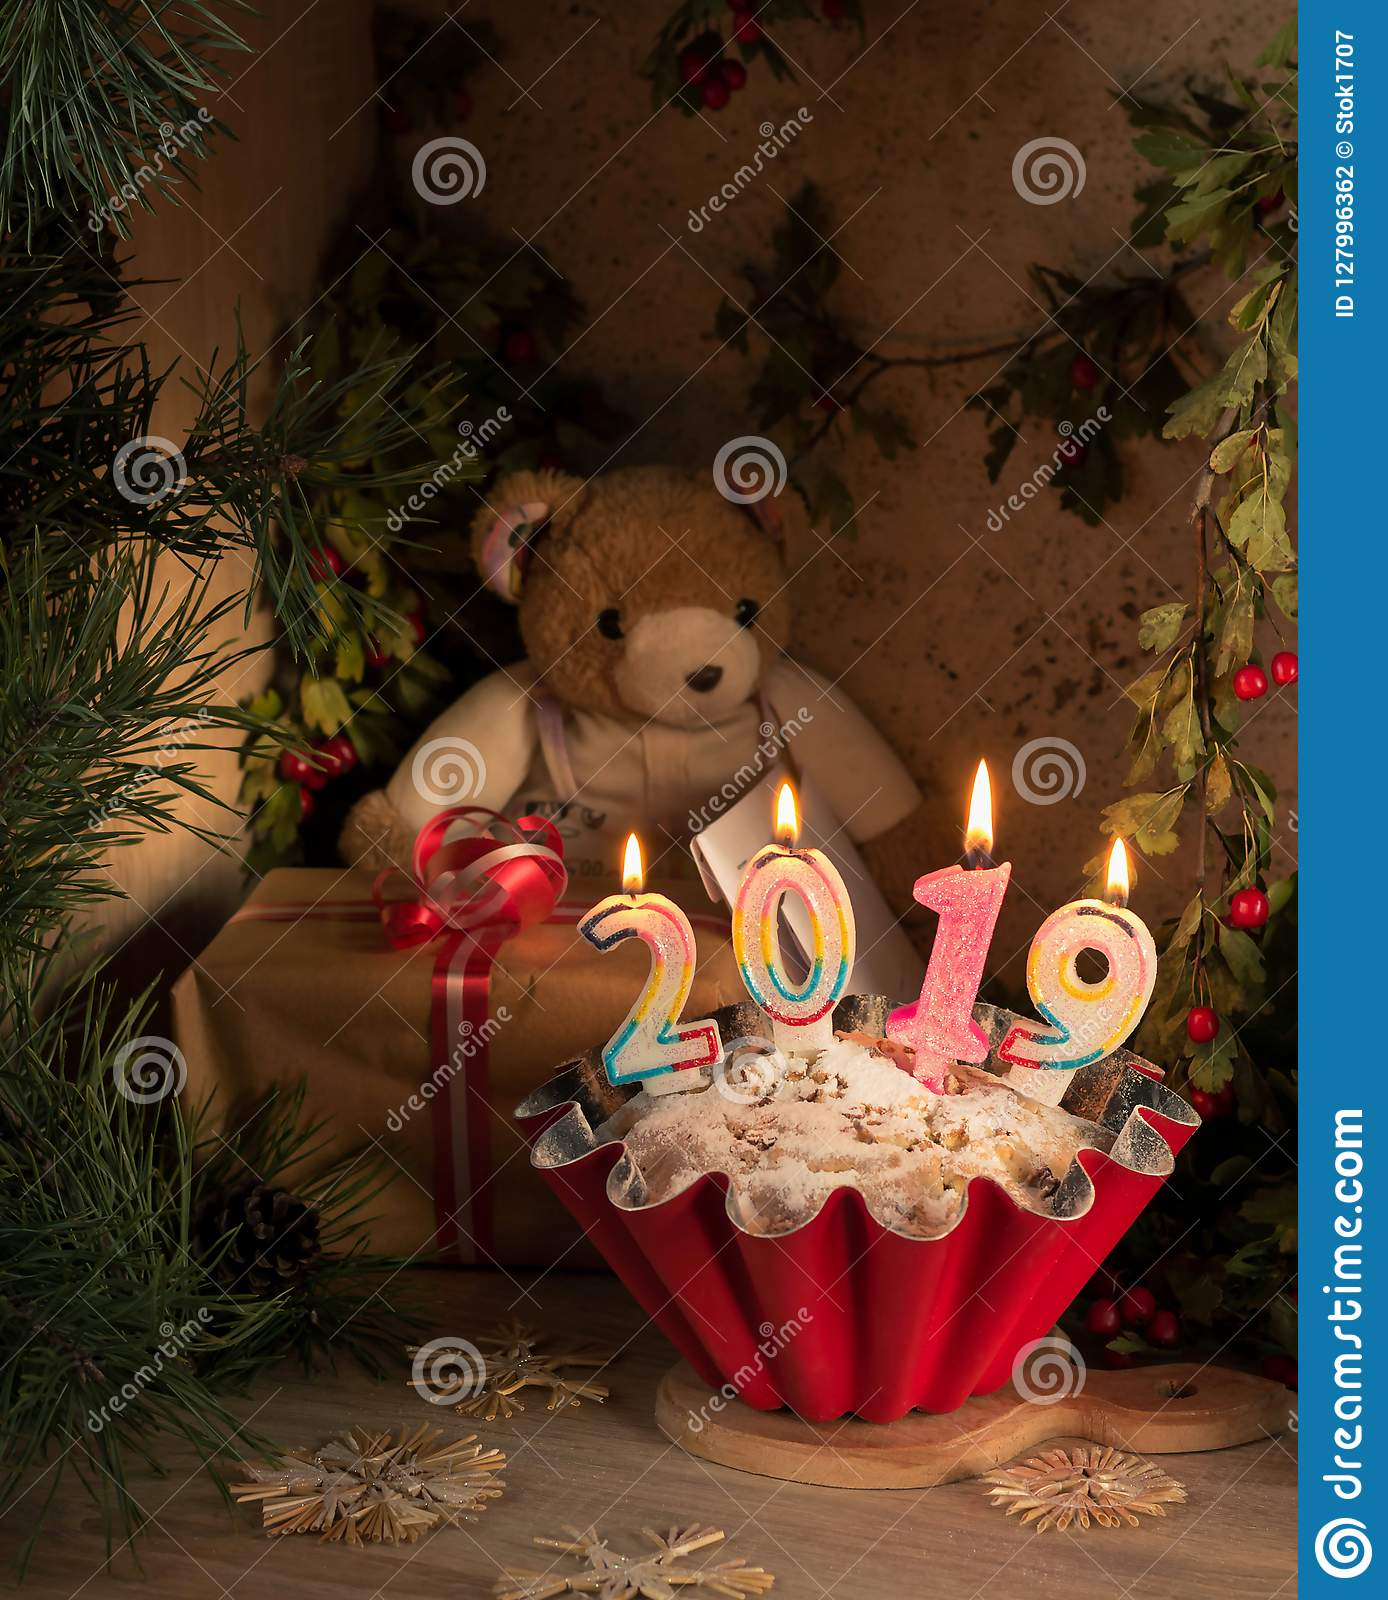 New Year card 2019. Christmas card. Bear with letters sits in front of an apple pie.